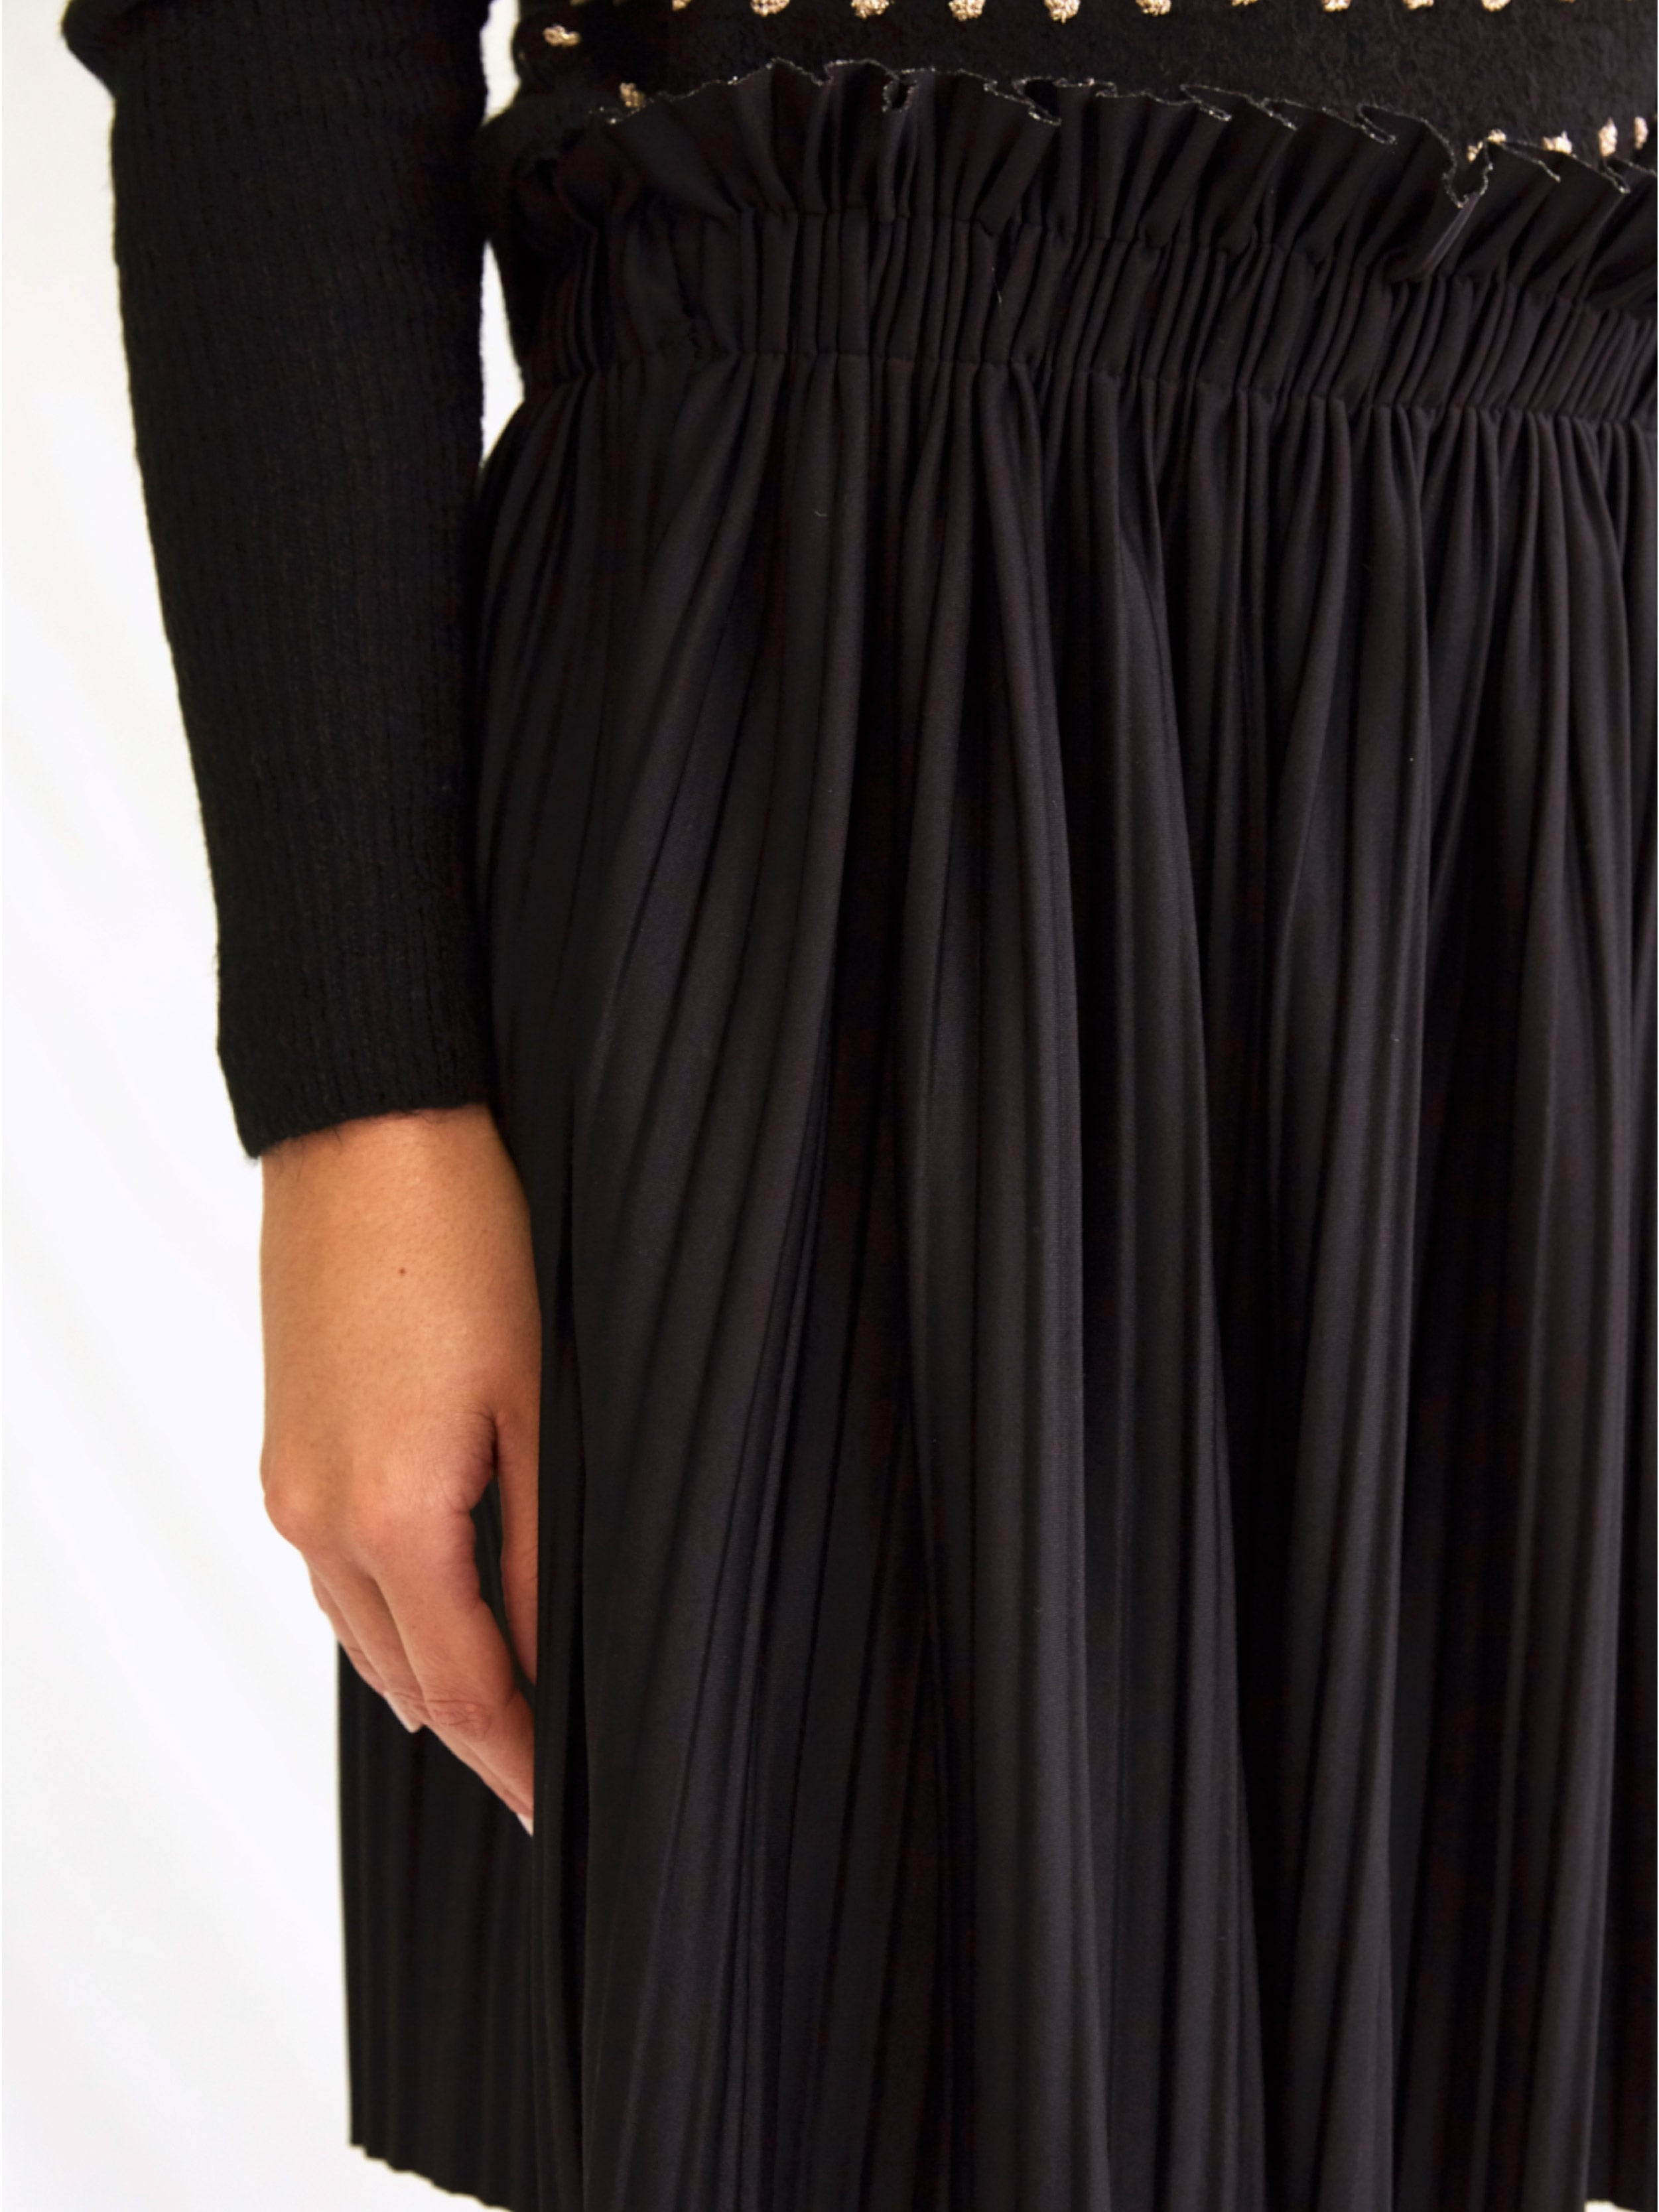 STARS IN OUR EYES PLEATED SKIRT IN BLACK